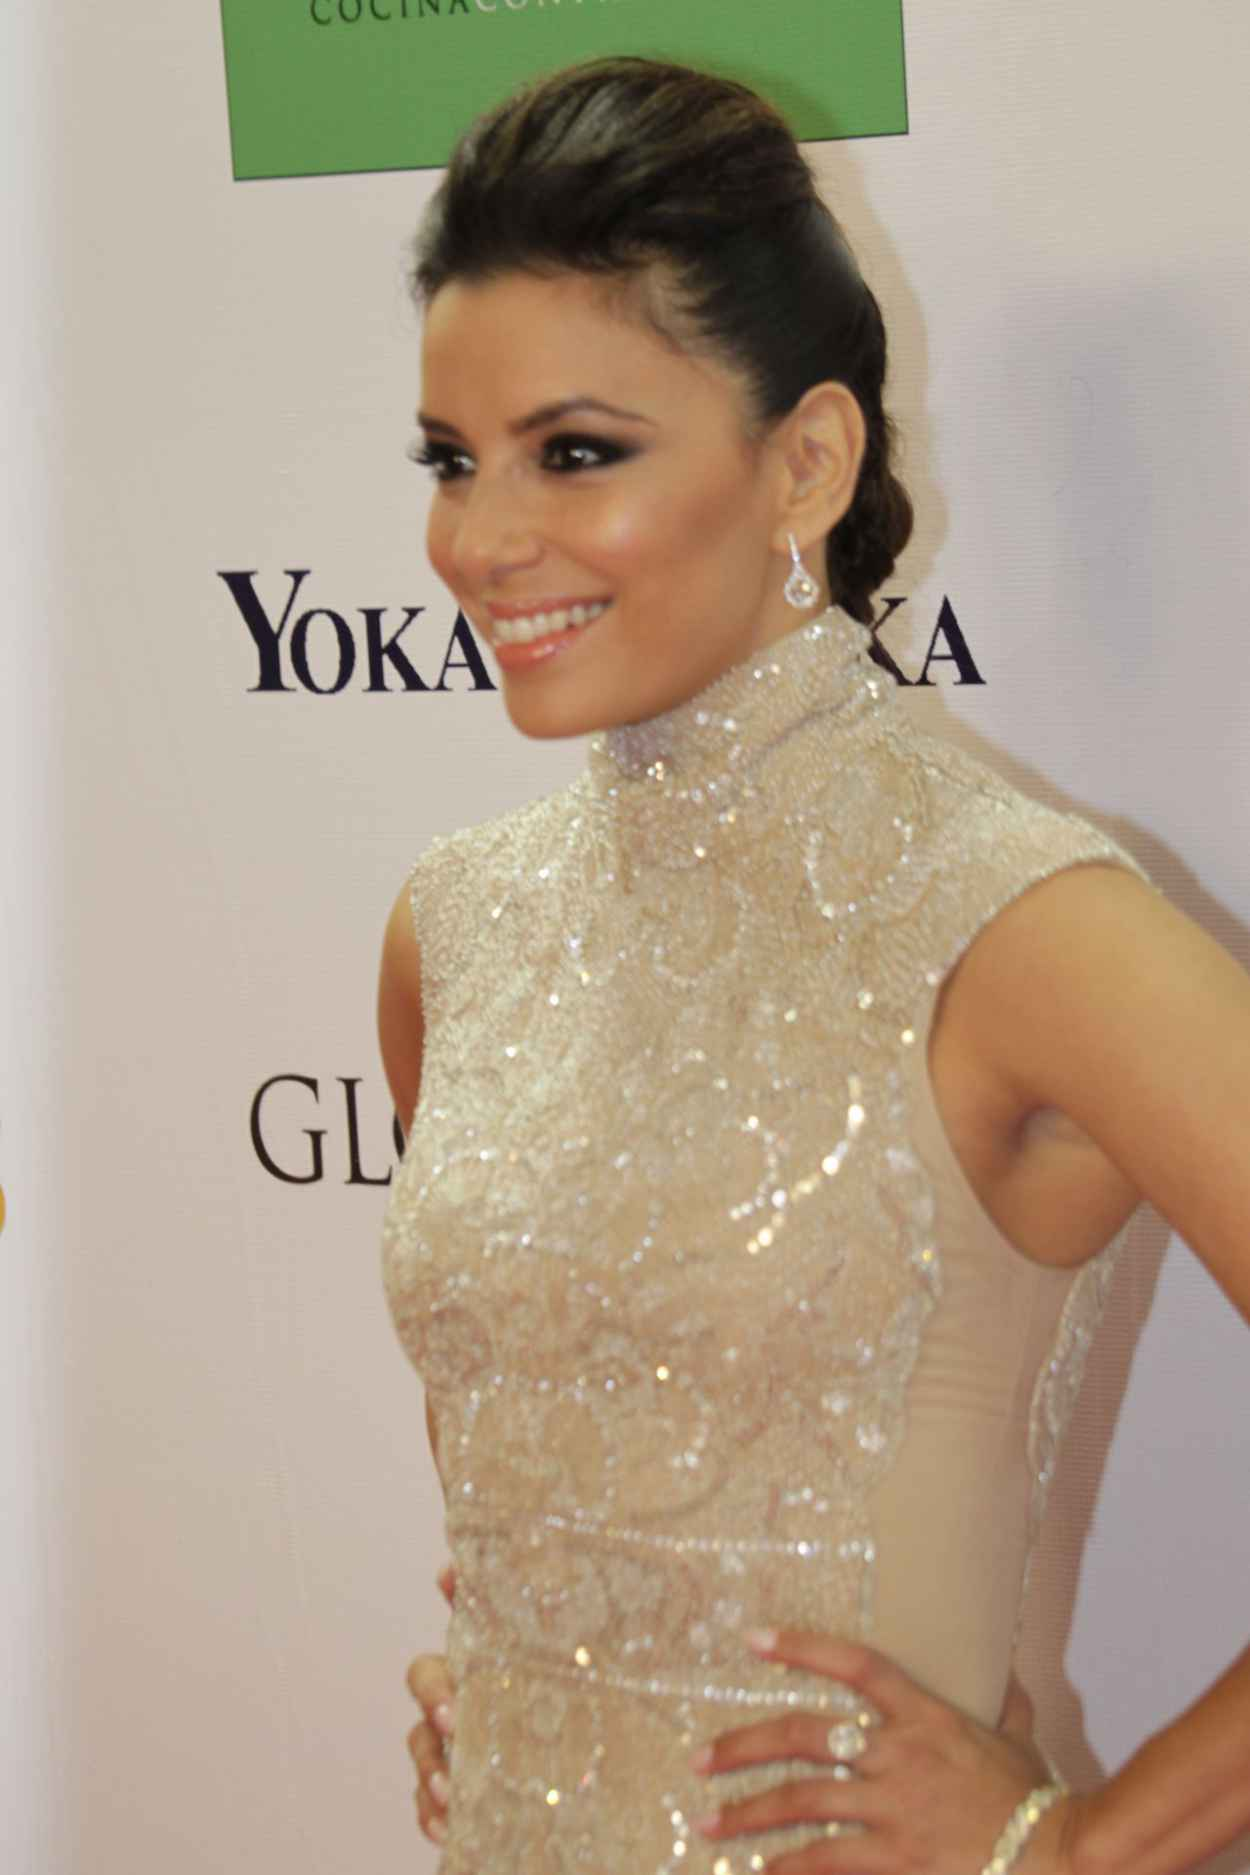 Eva Longoria Red Carpet Photos - Hosted the Global Gift Gala in Marbella for Charity-1